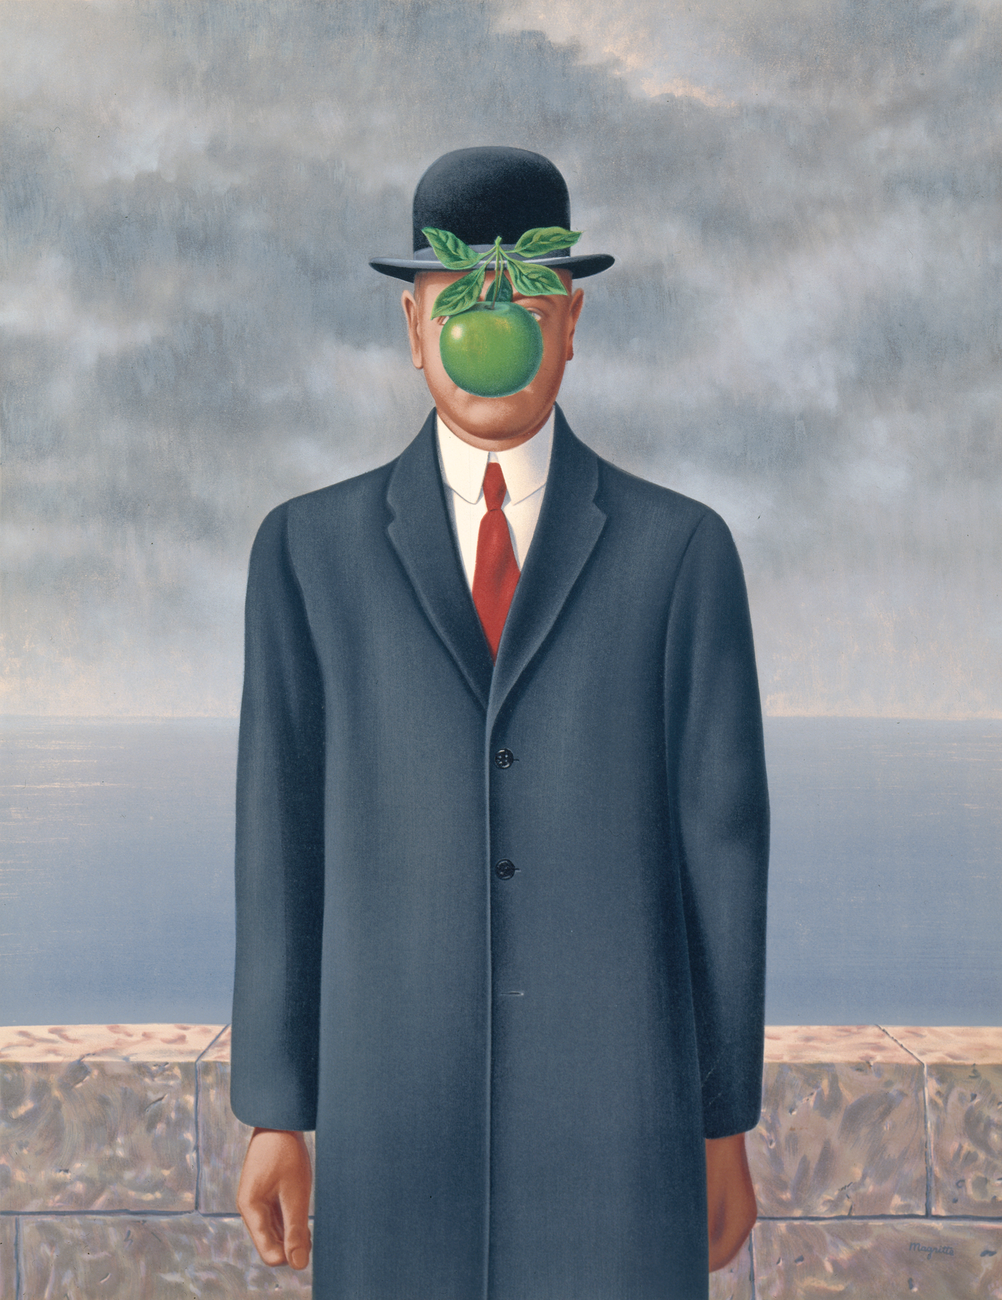 A man in a bowler hat standing in front of a cloudy sky with a green apple covering his face